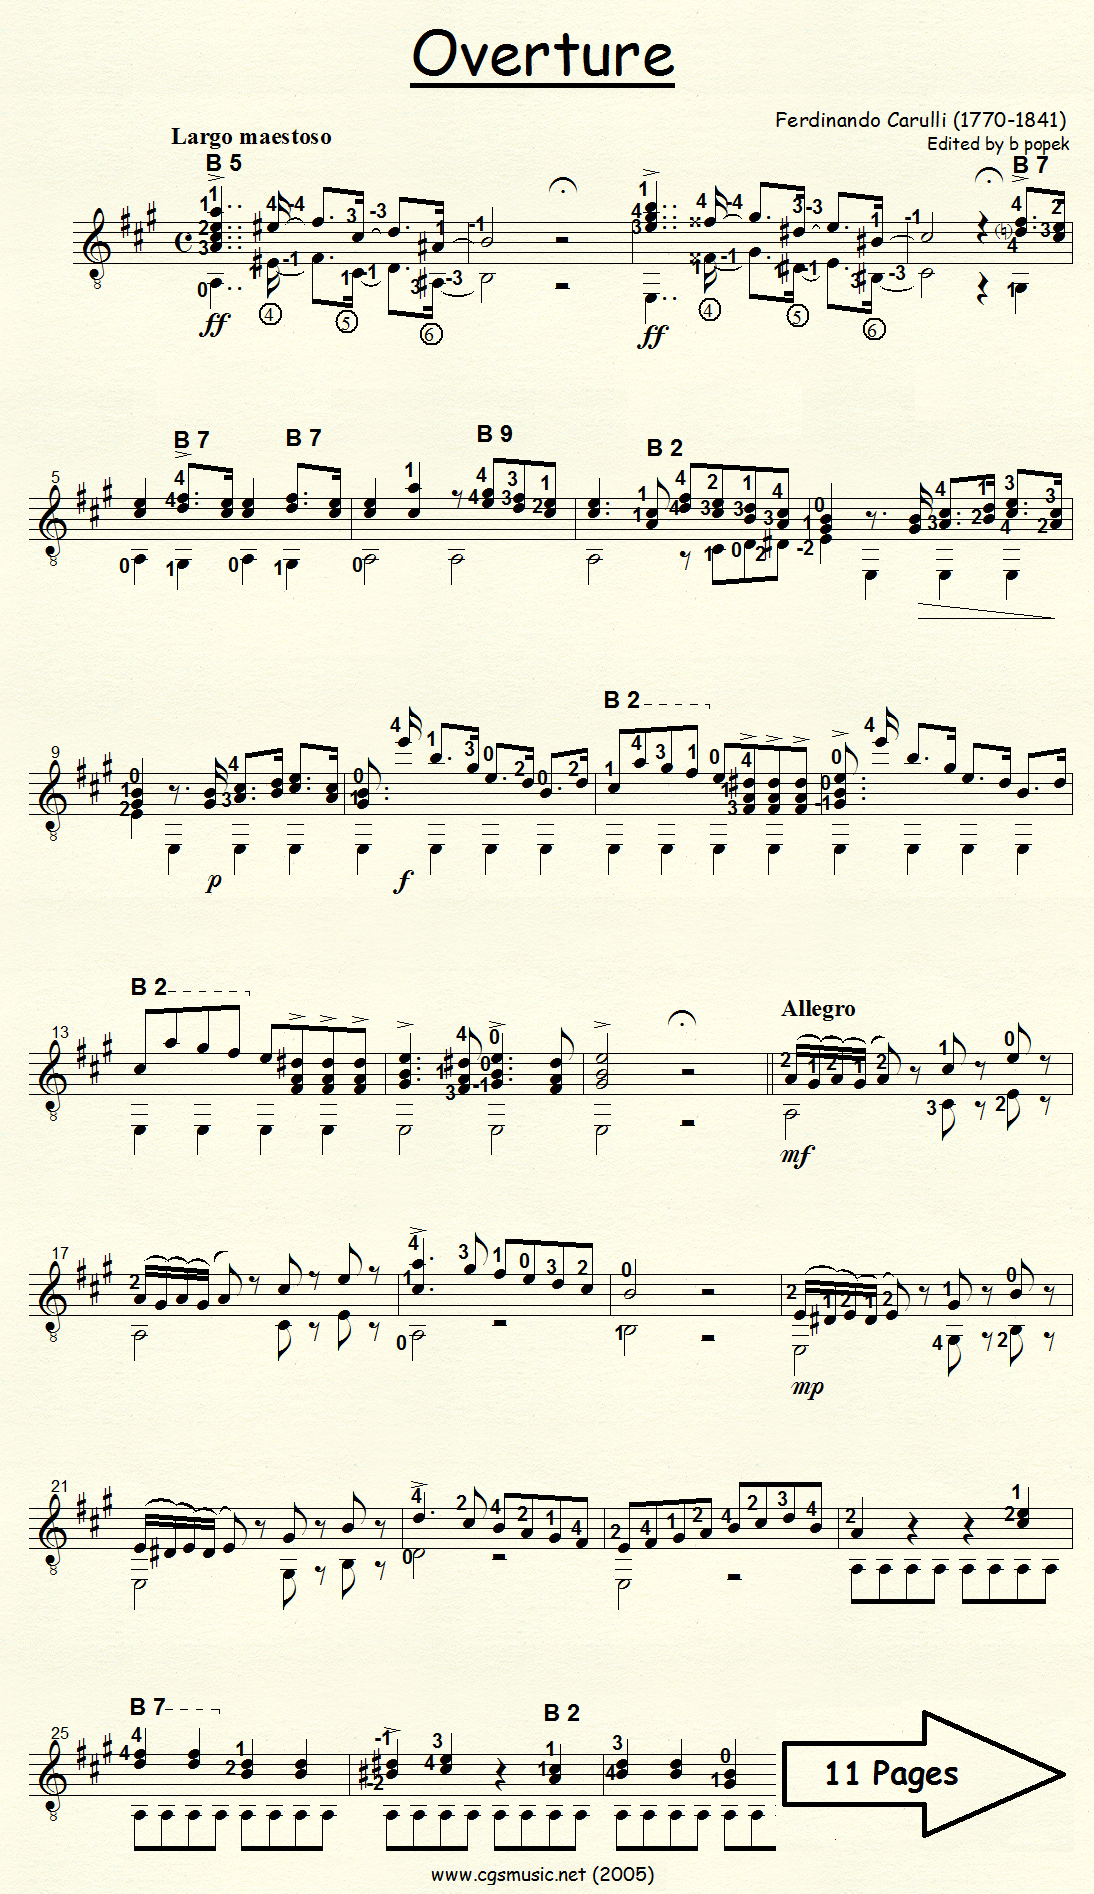 Overture (Carulli) for Classical Guitar in Standard Notation